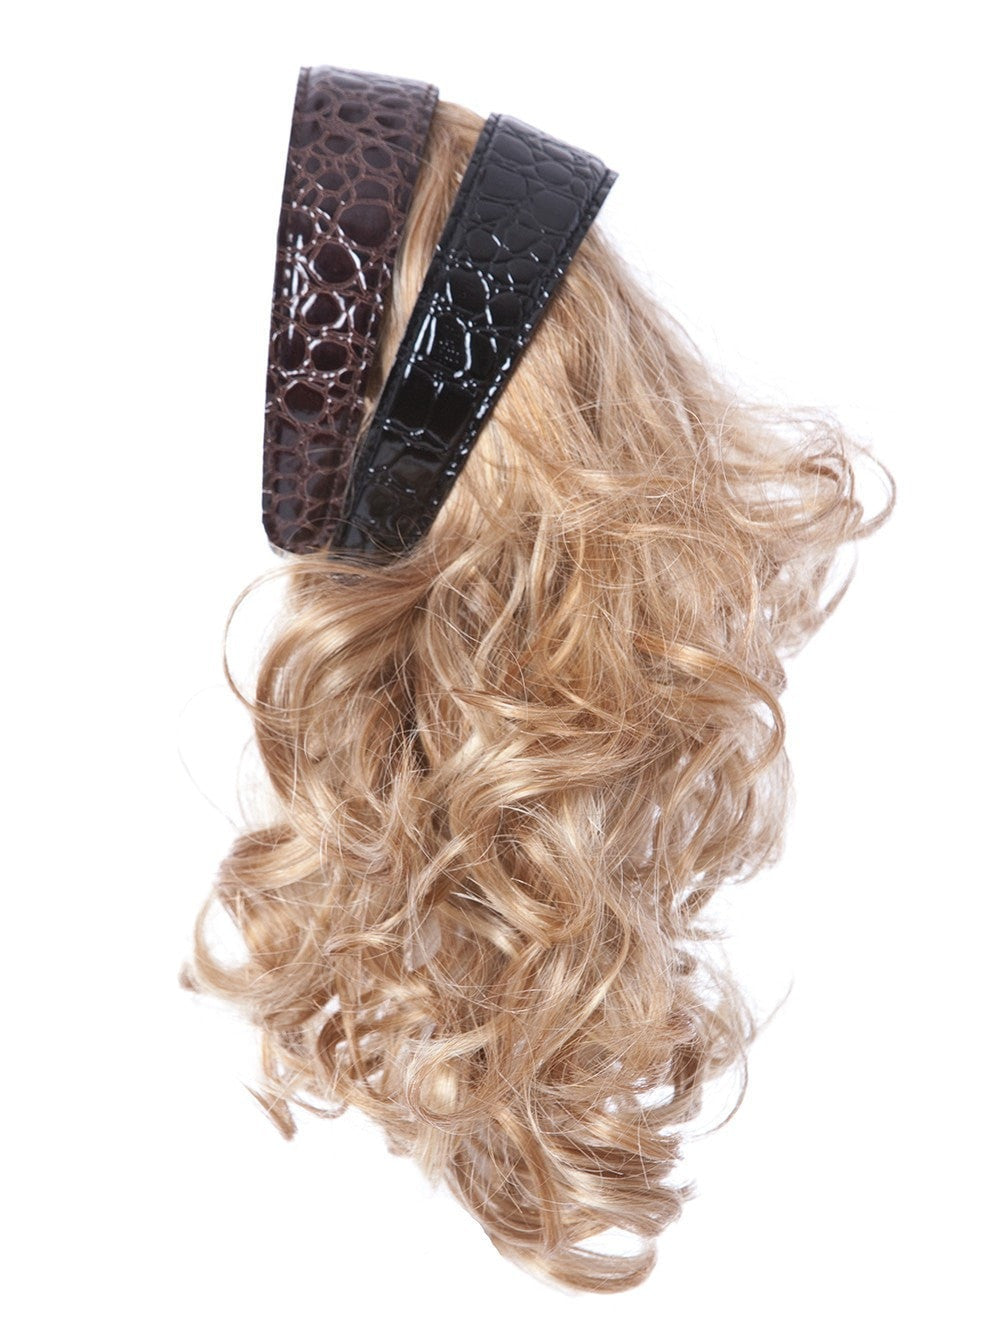 Headband Fall Curls By Toni Brattin Hair Extensions